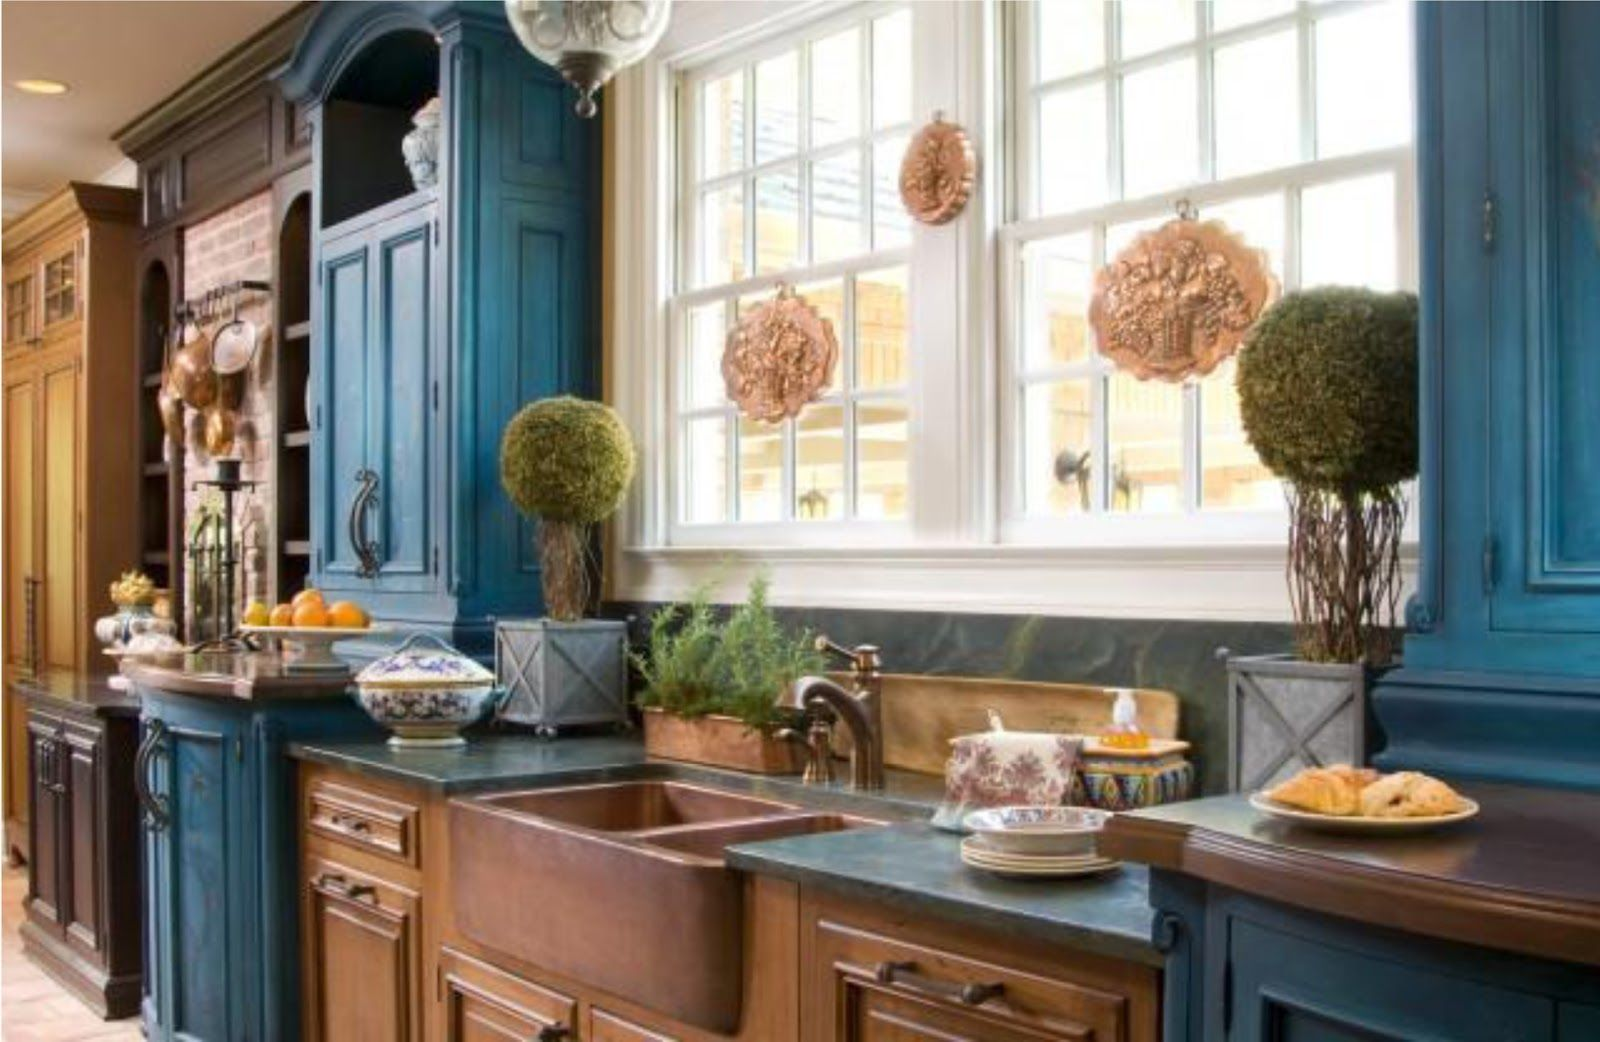 Simplifying Remodeling Two Tone Cabinet Finishes Double Kitchen Style Eclectic Kitchen Distressed Kitchen Cabinets Rustic Kitchen